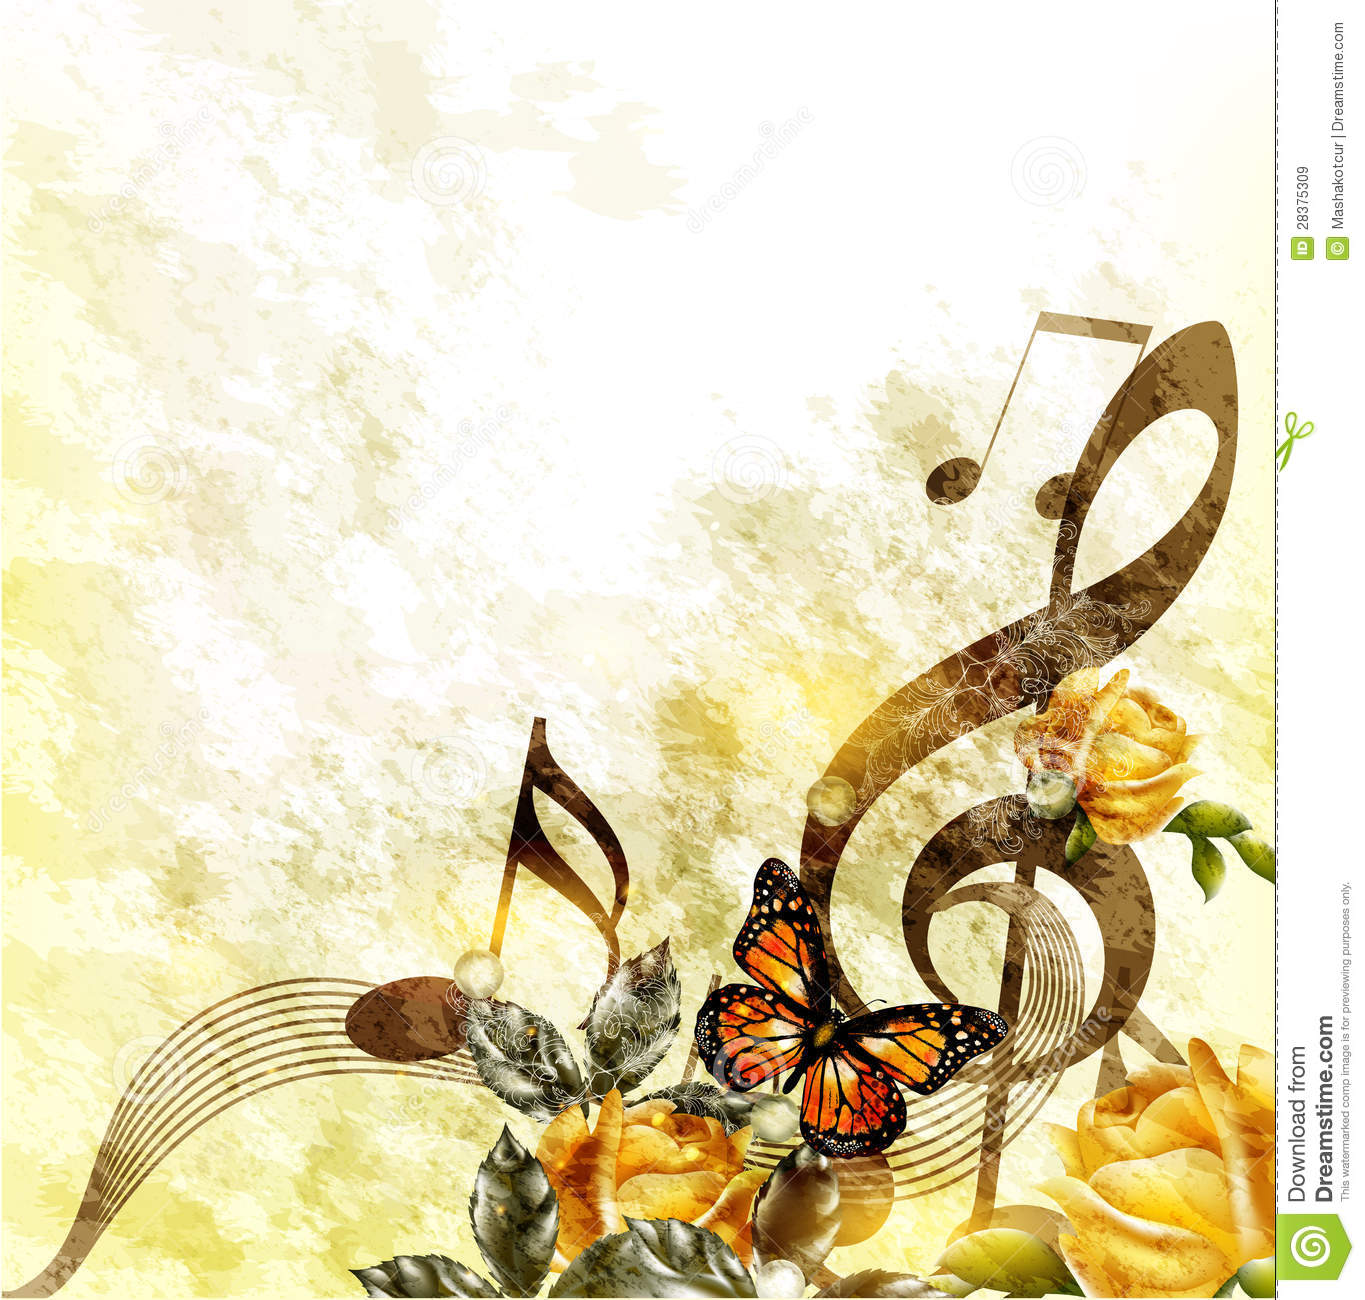 grunge-music-romantic-background-notes-roses-28375309.jpg